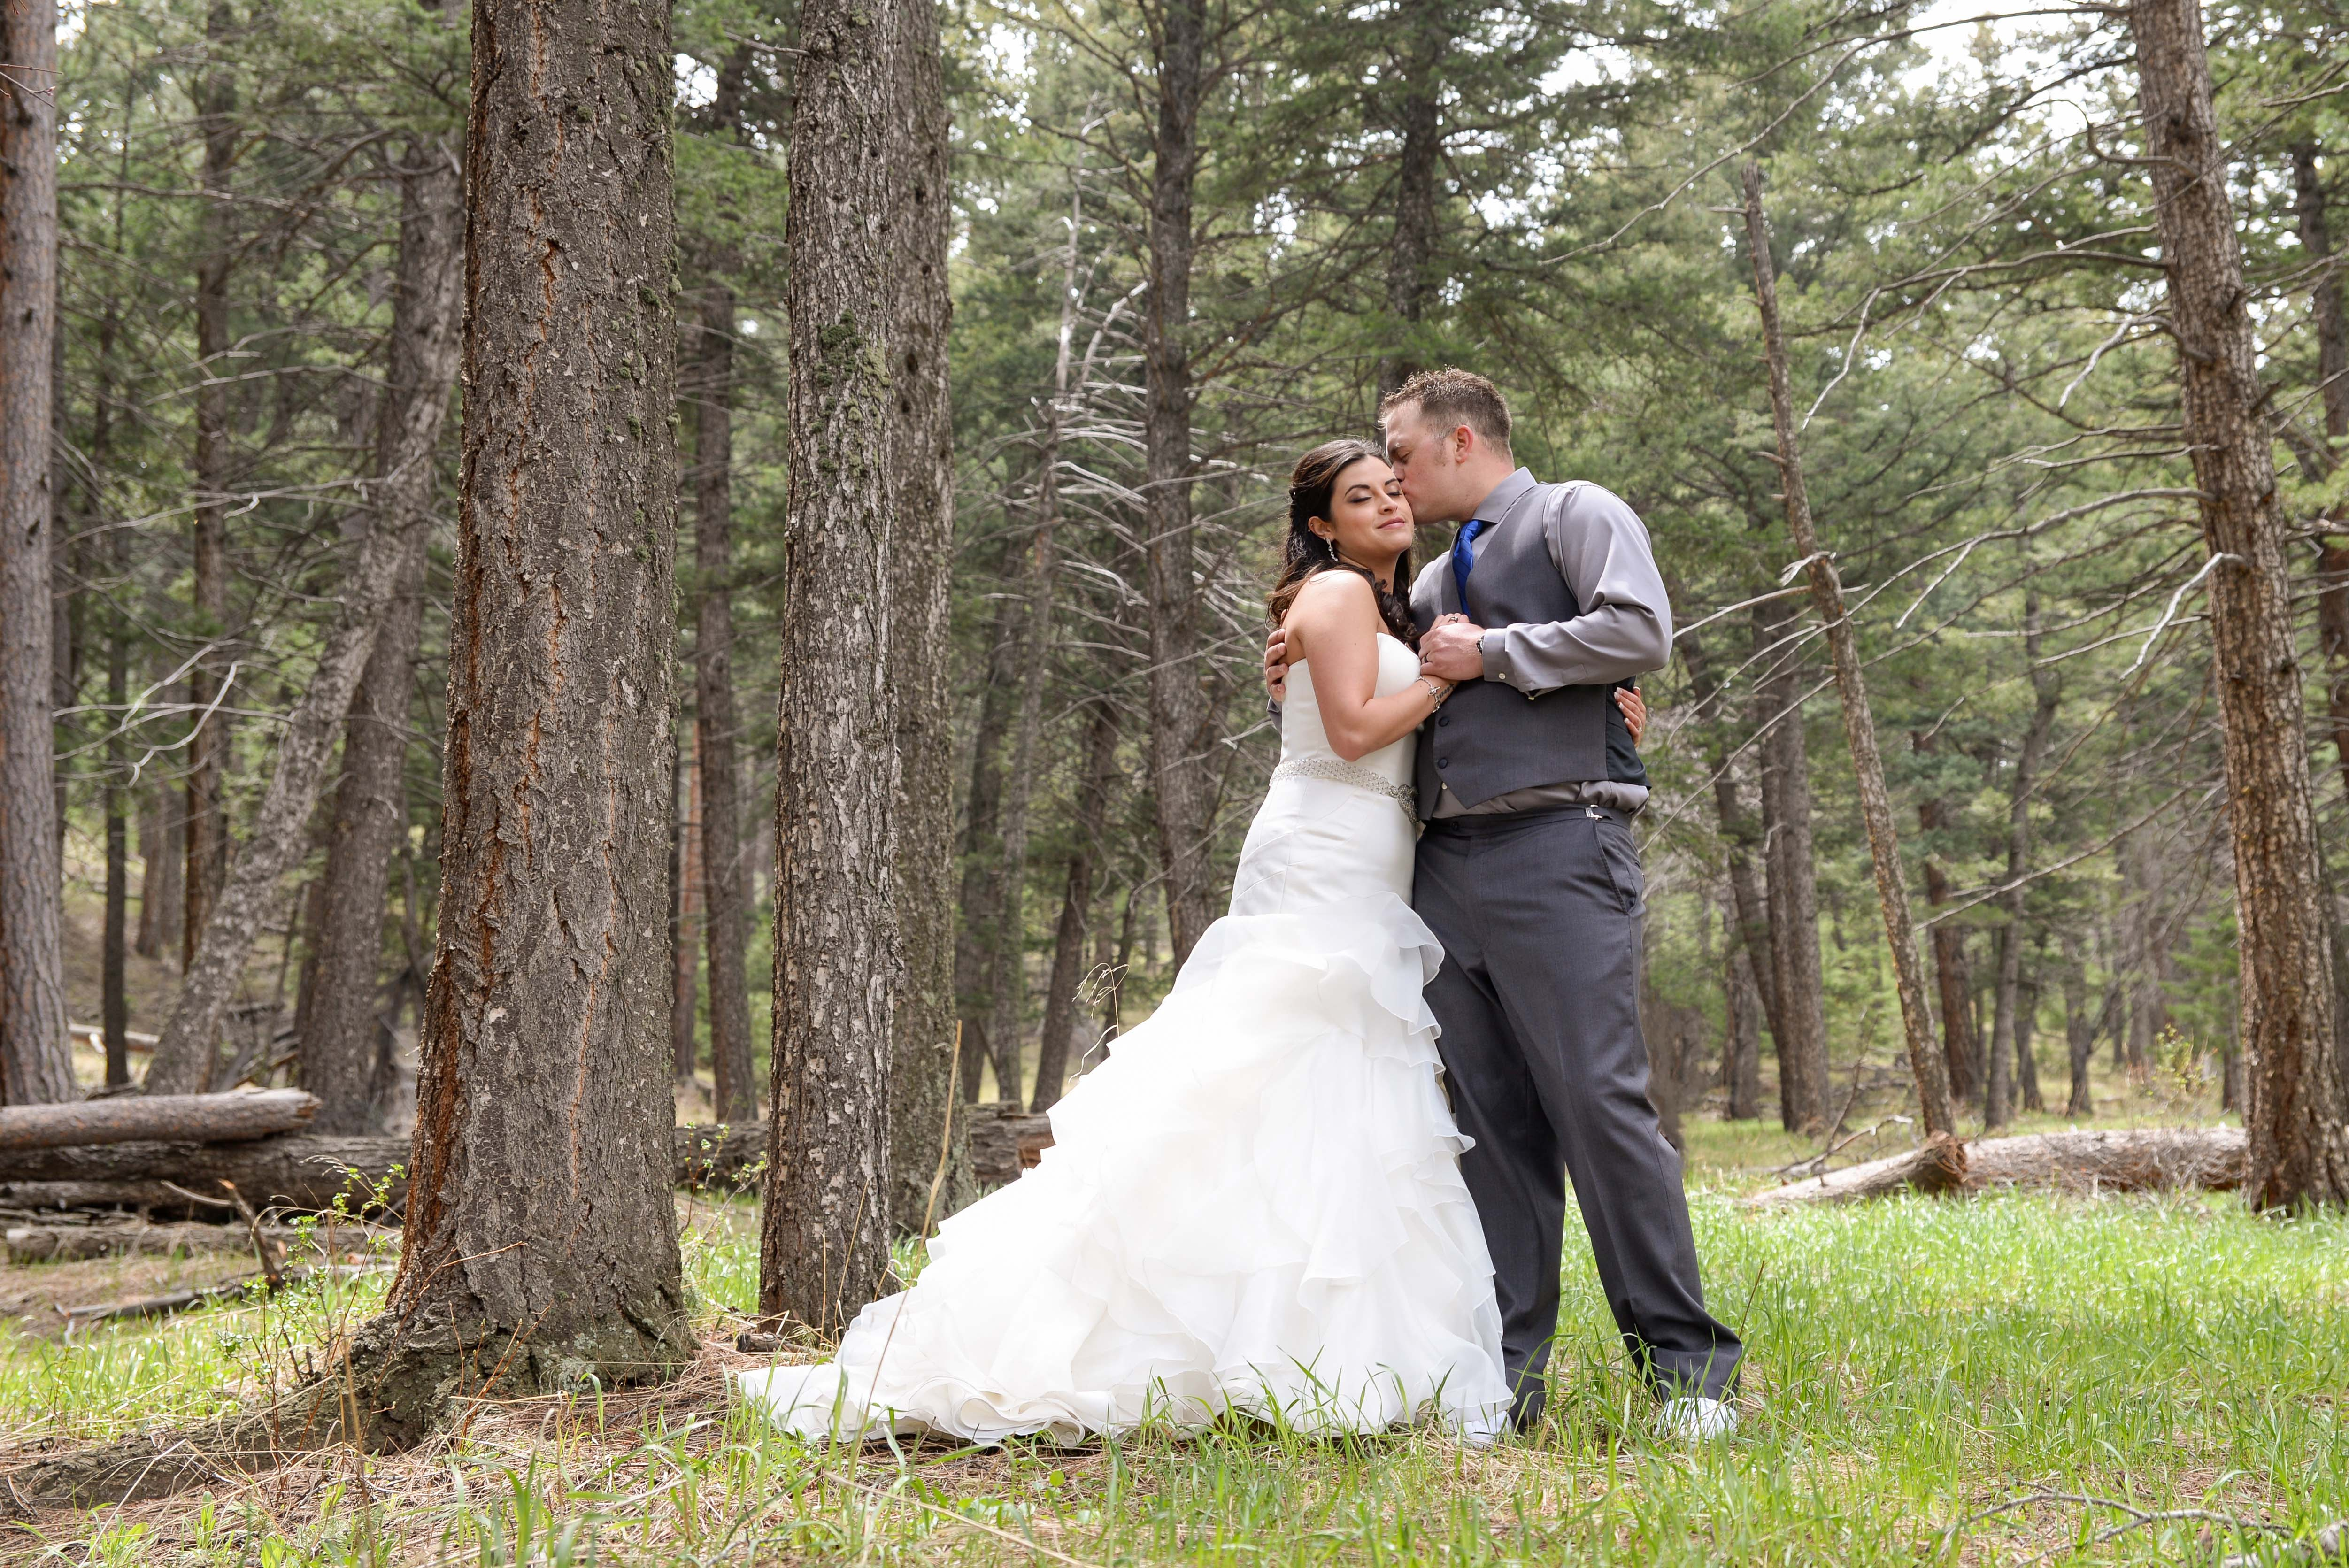 Wedding at The Pines at Genesee